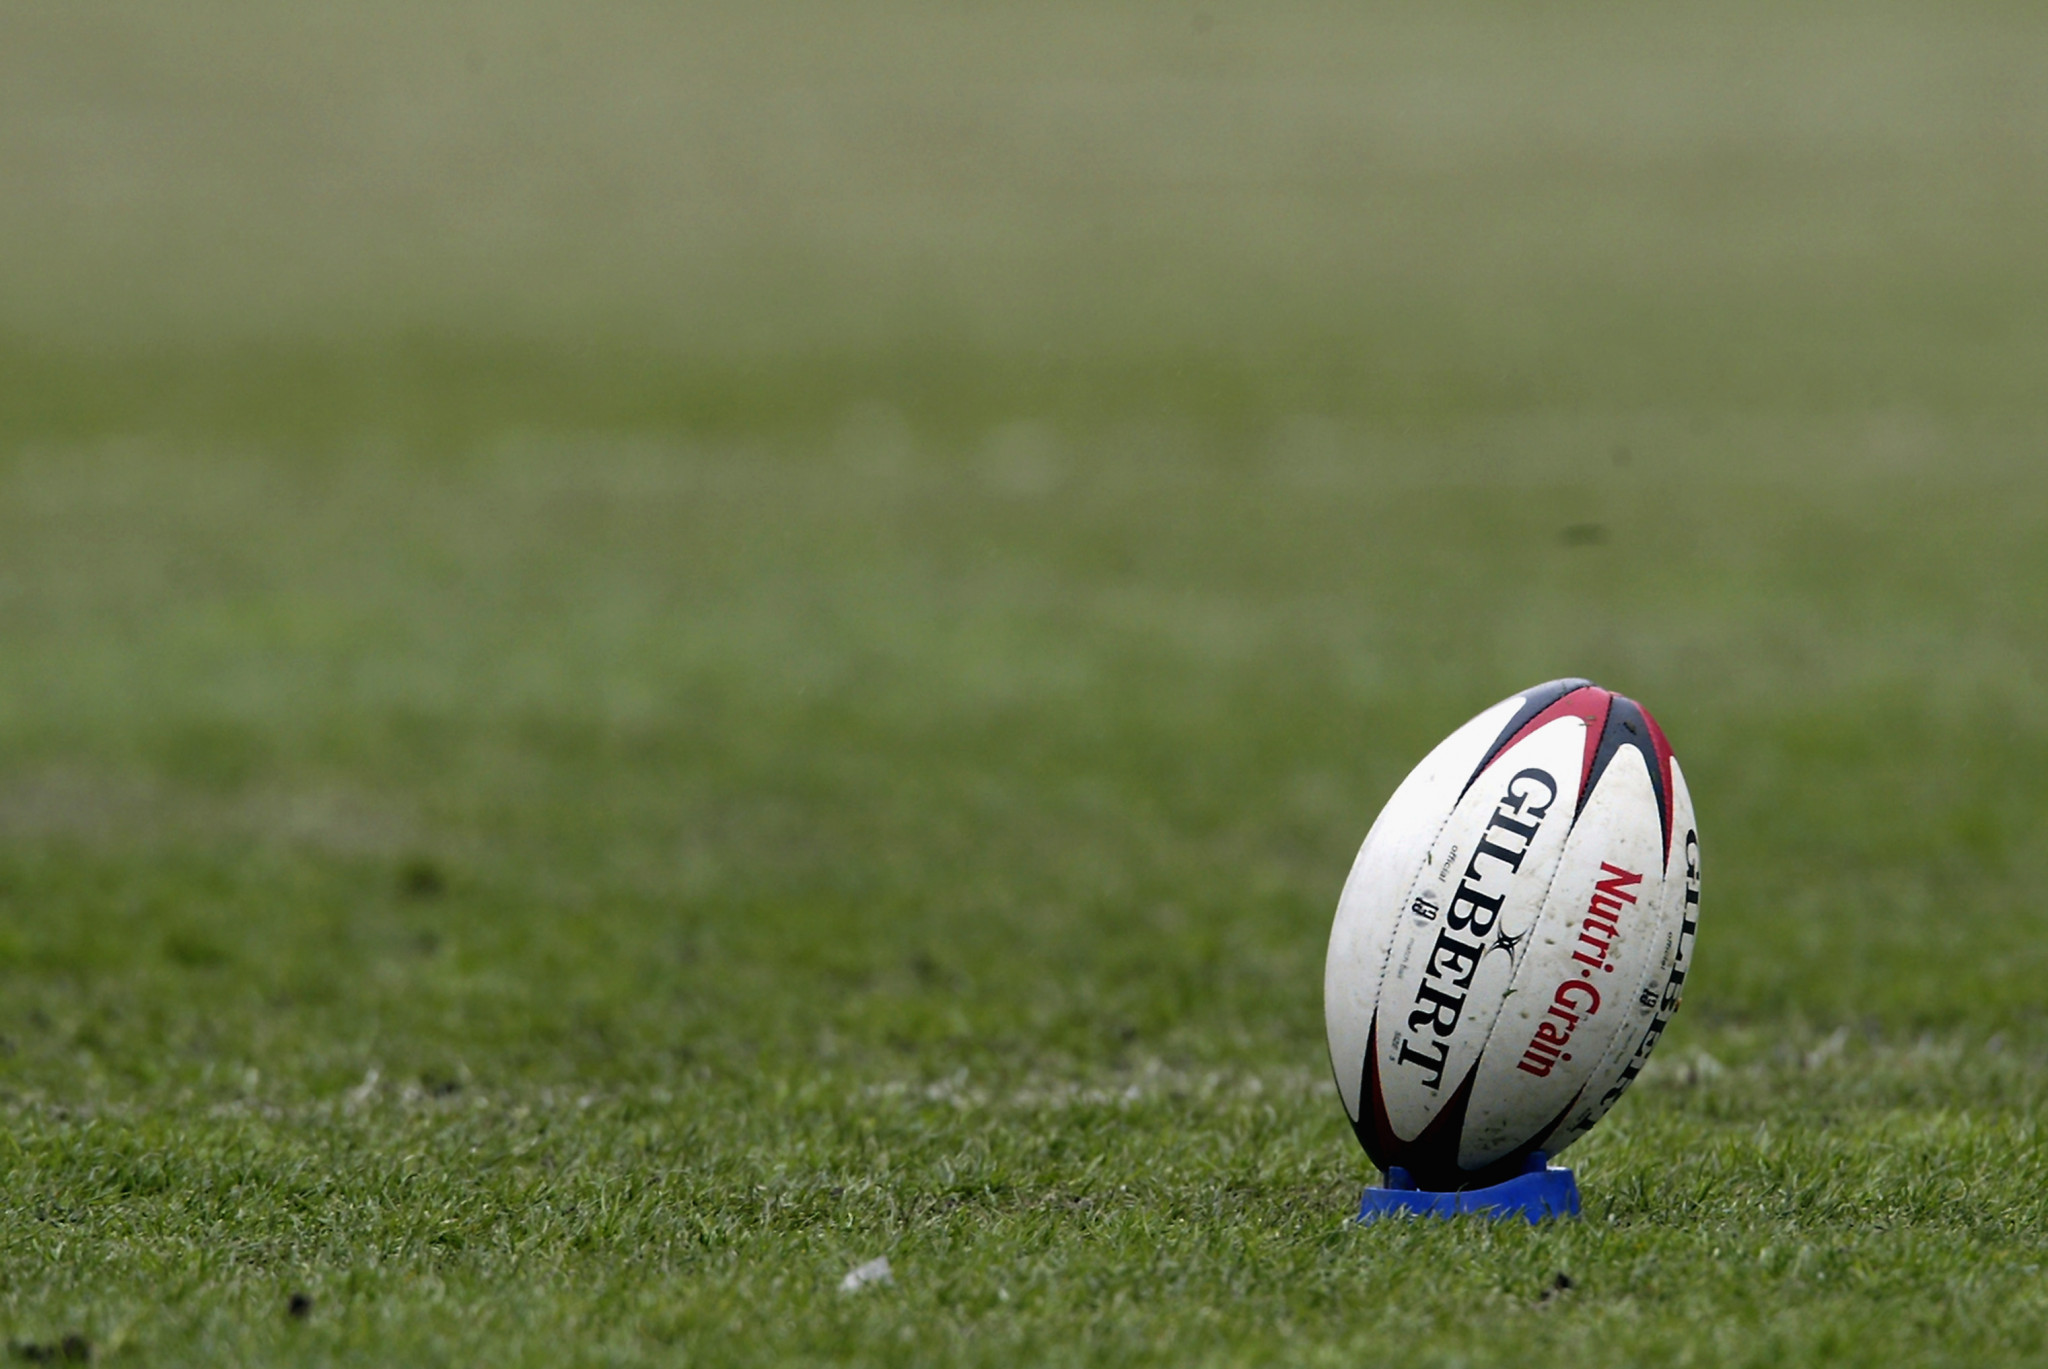 UK Anti-Doping hands four-year suspensions to two rugby players